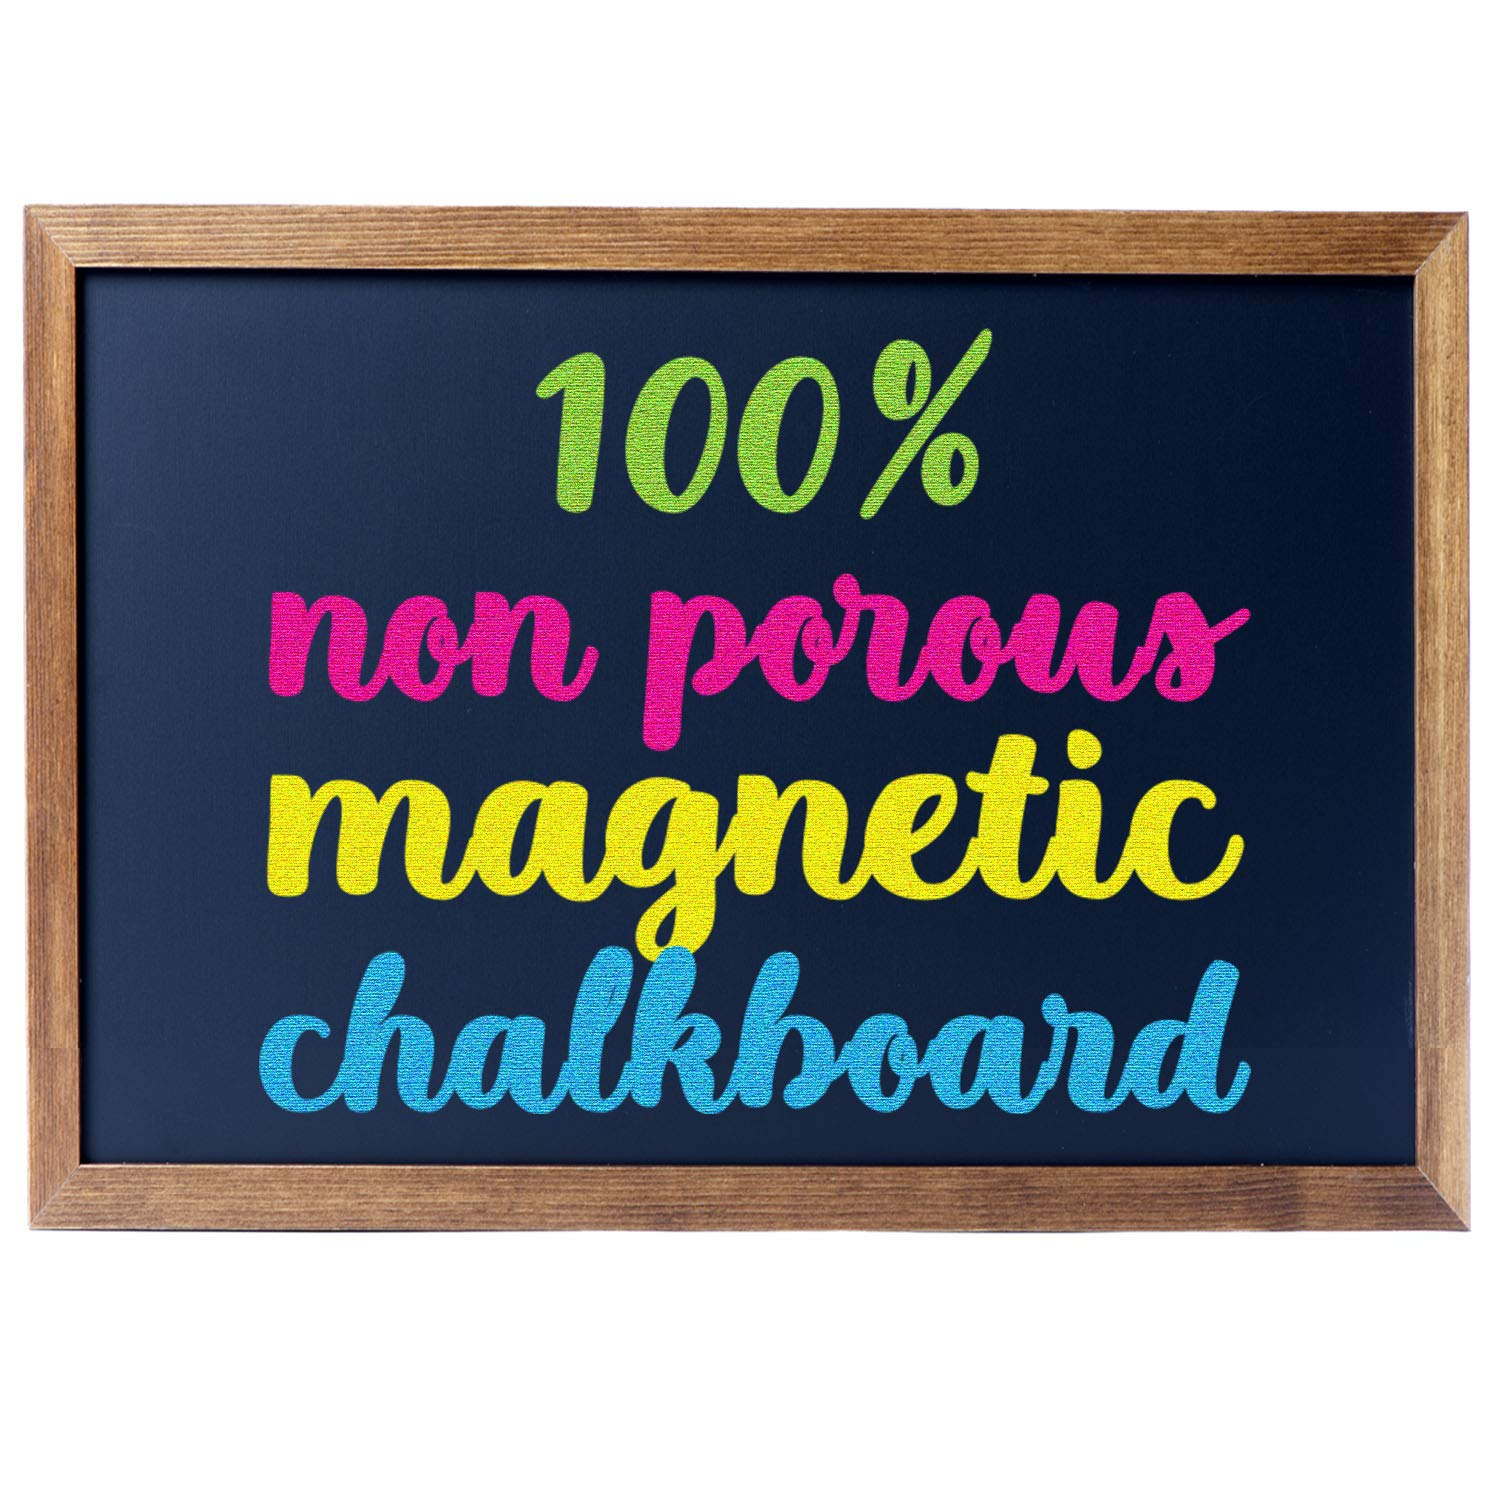 Cedar Markers 36''x24'' Chalkboard with Wooden Frame. 100% Non-Porous Erasable Blackboard and Whiteboard for Liquid Chalk Markers. Magnet Board Chalk Board Decorative Chalkboard for Parties (36x24) by Cedar Markers